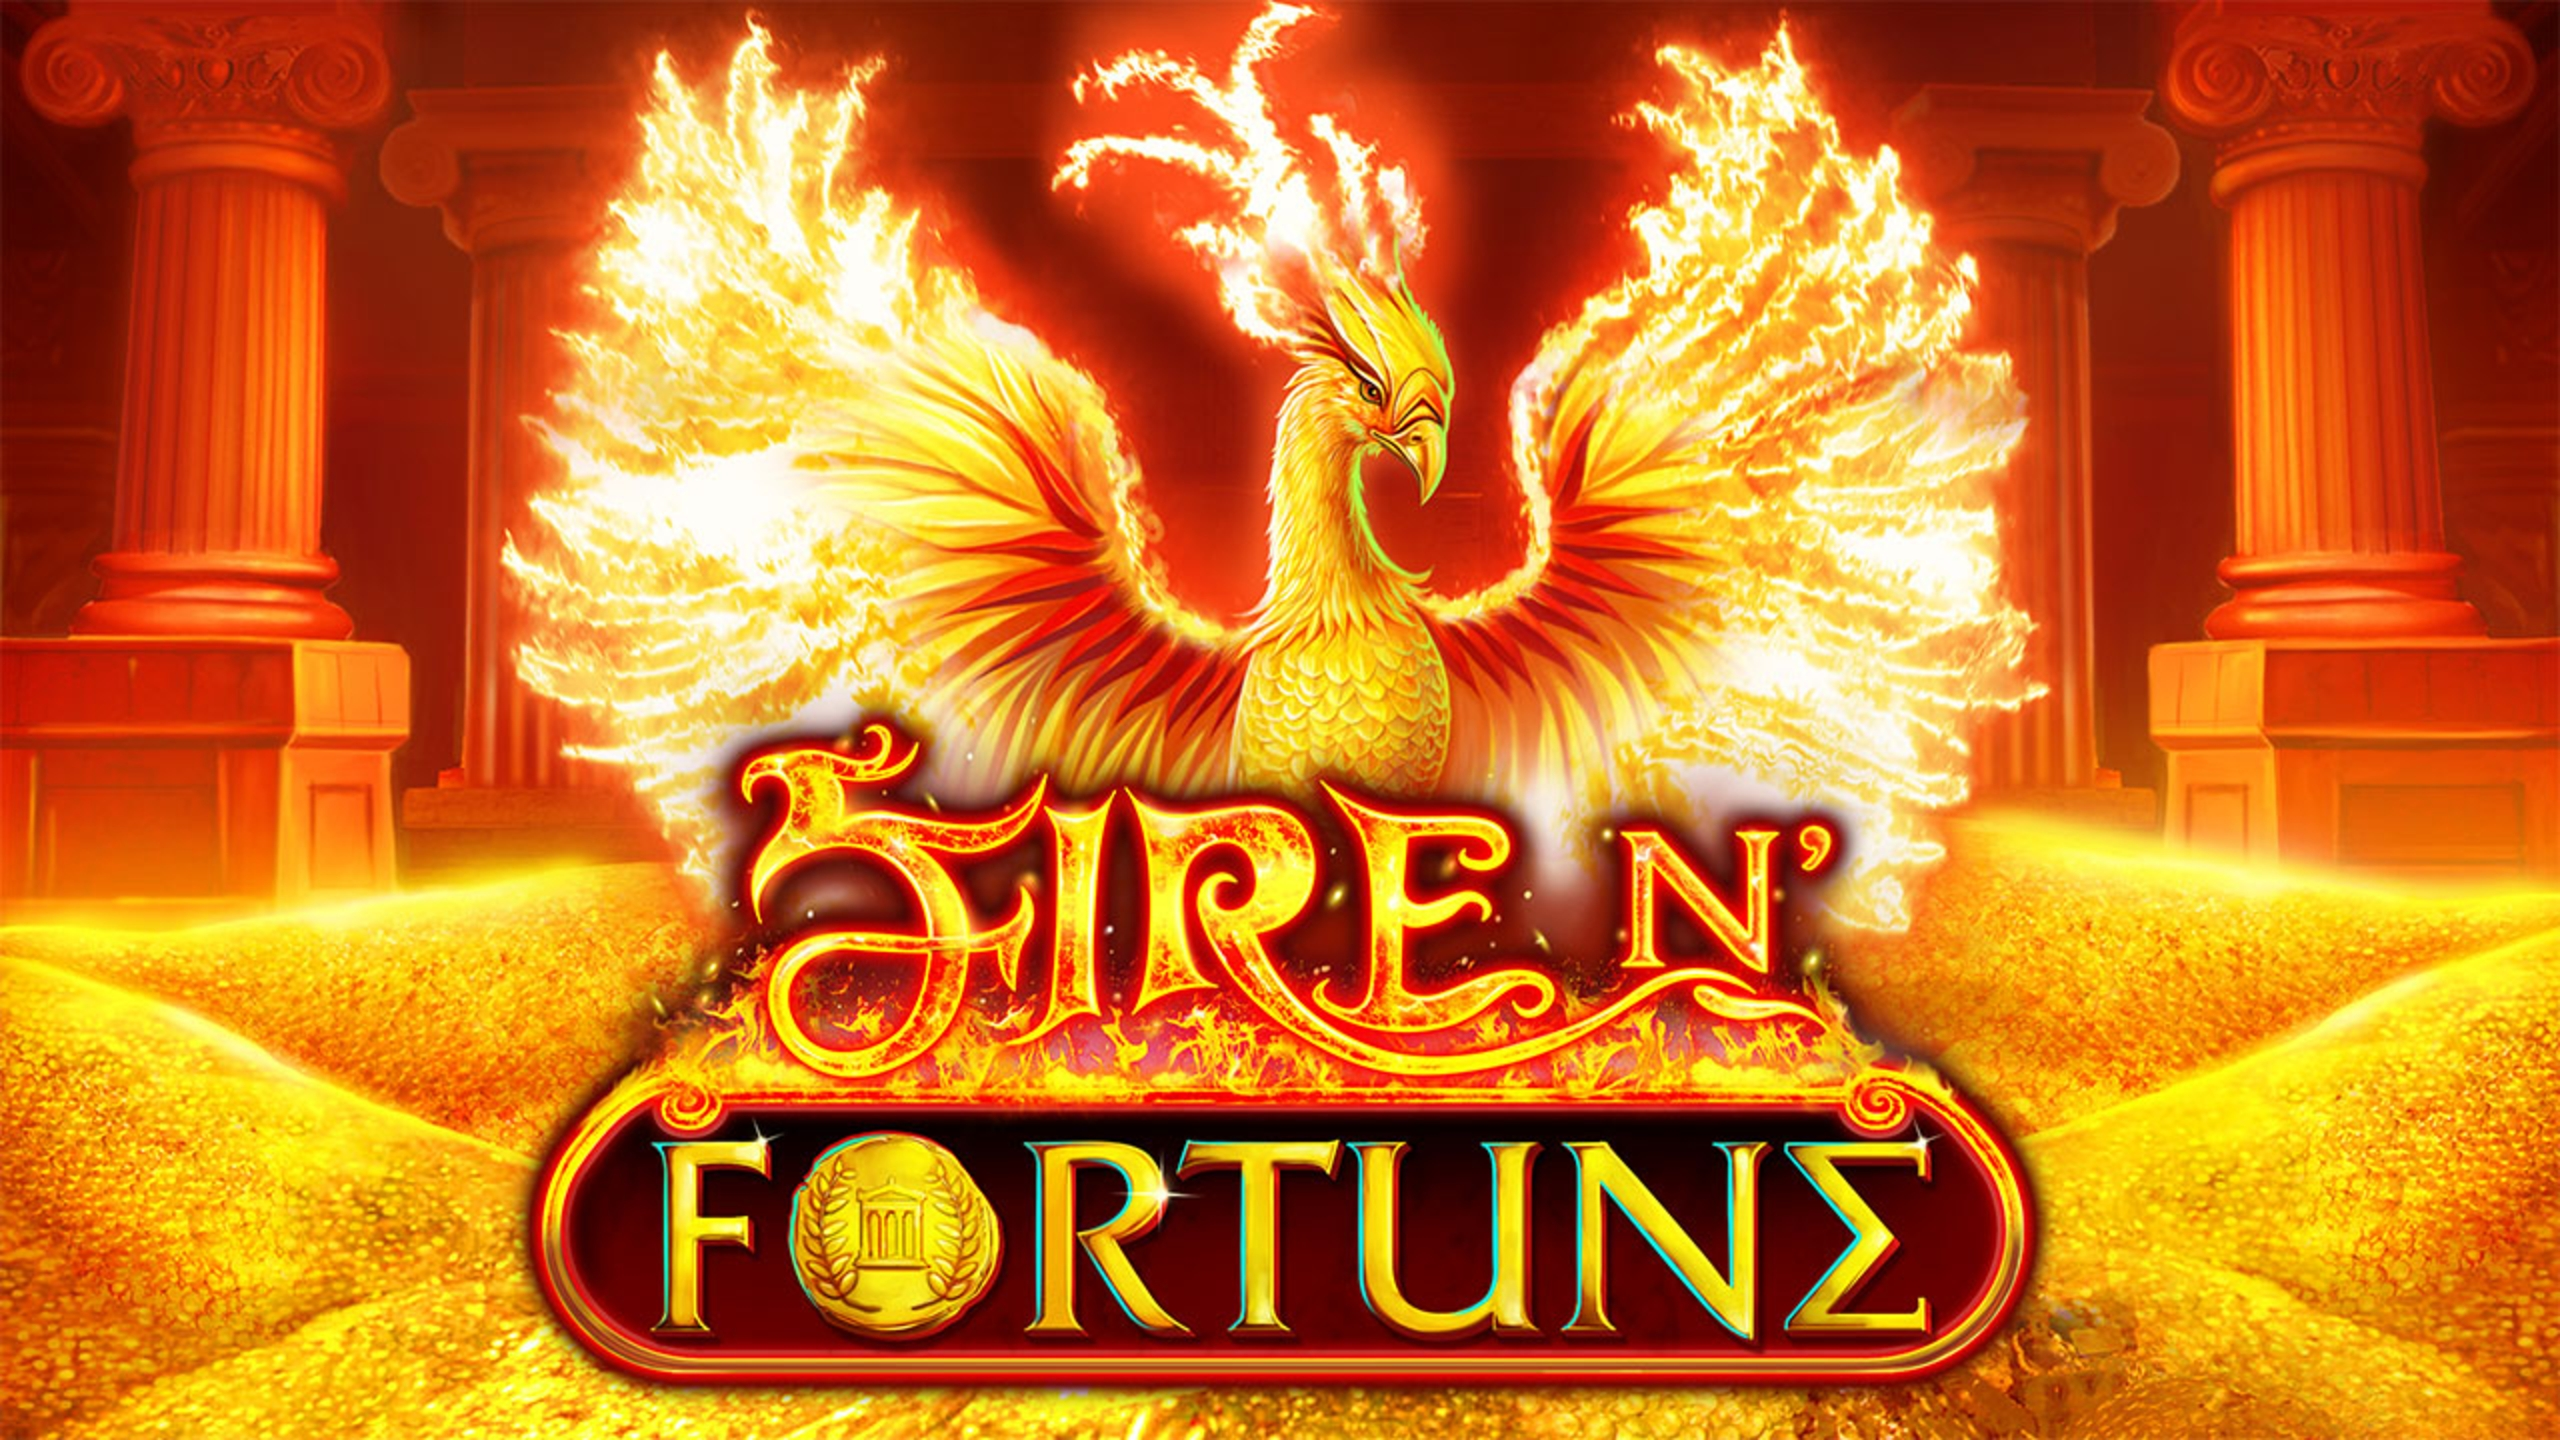 The Fire N' Fortune Online Slot Demo Game by 2 By 2 Gaming